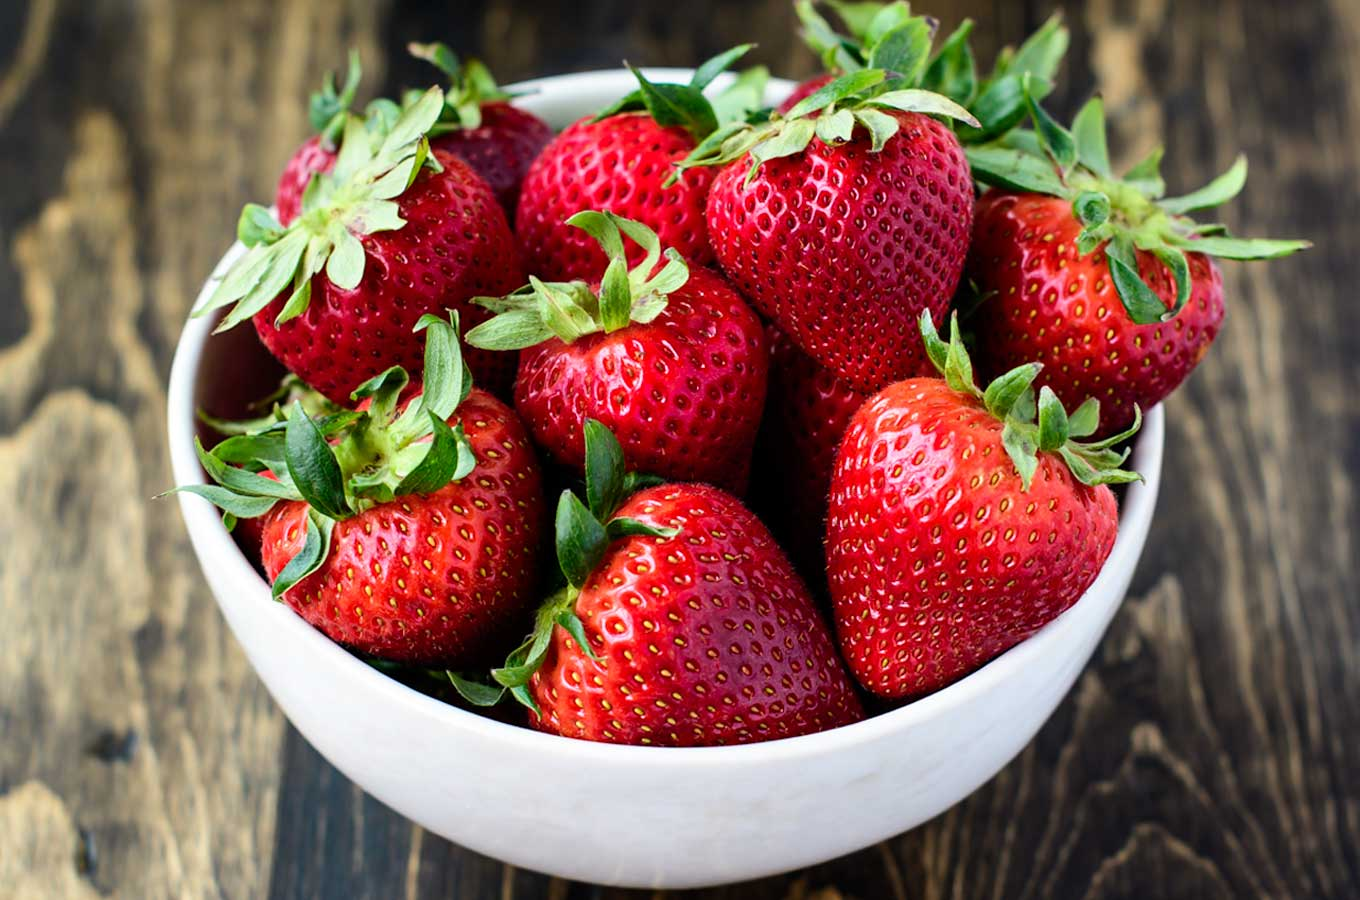 Bowl of Strawberries